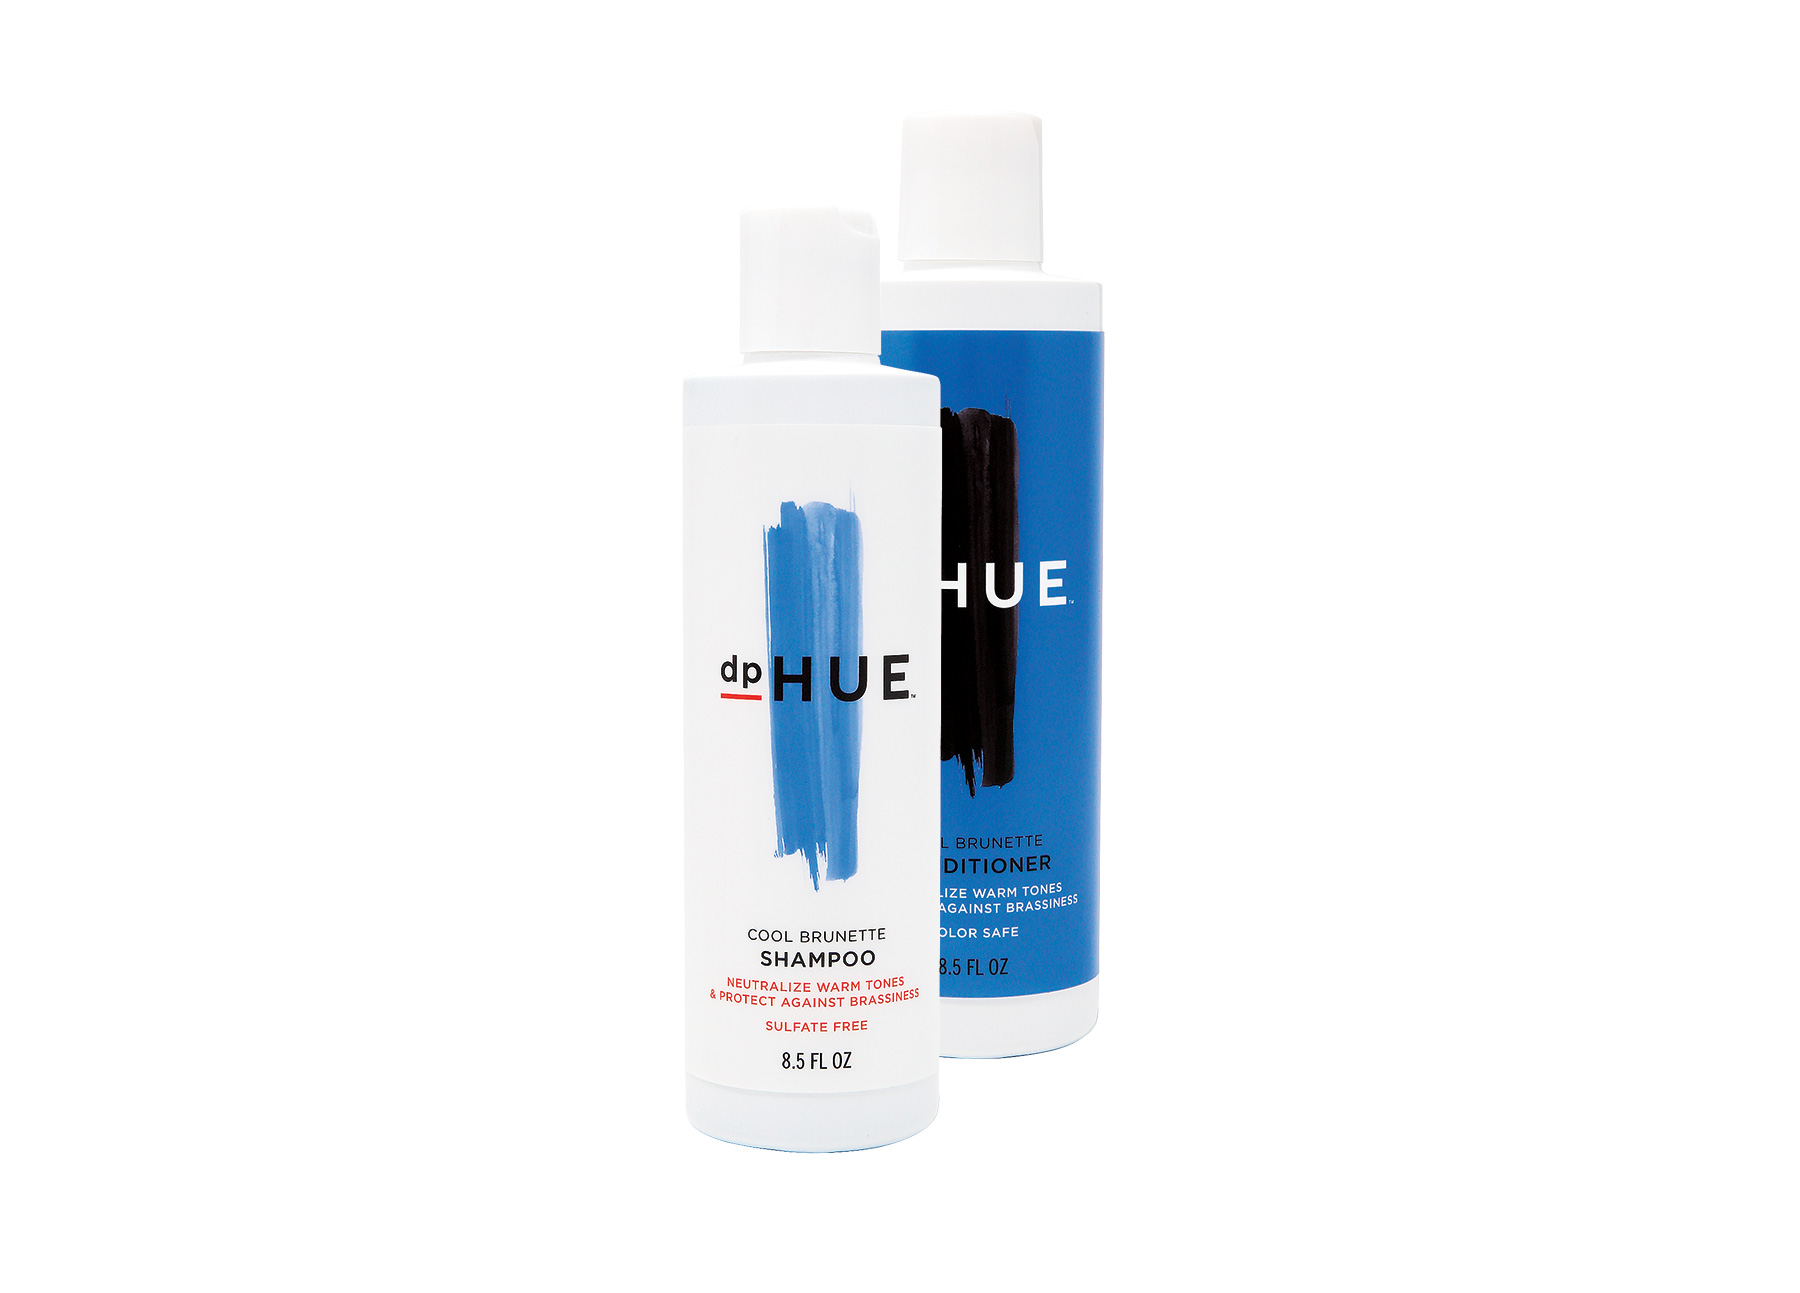 DP Hue Cool Brunette Shampoo and Conditioner